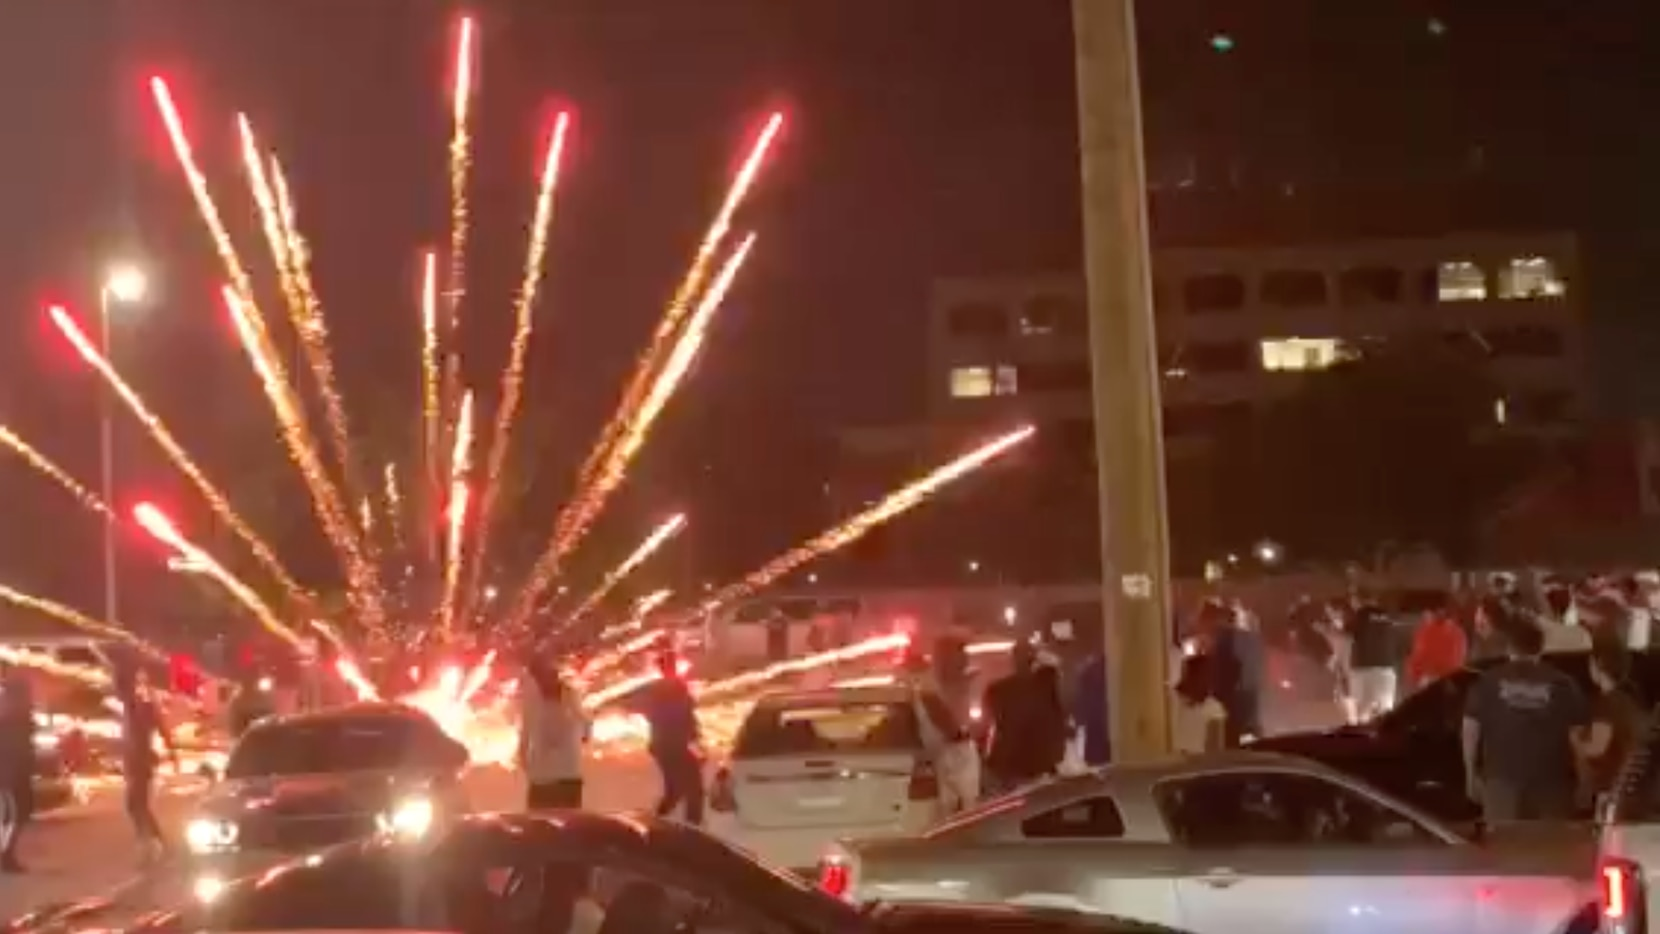 Dallas police are cracking down on street racing events which attract large crowds, drugs, guns, stolen vehicles, and in at least one case, fireworks.